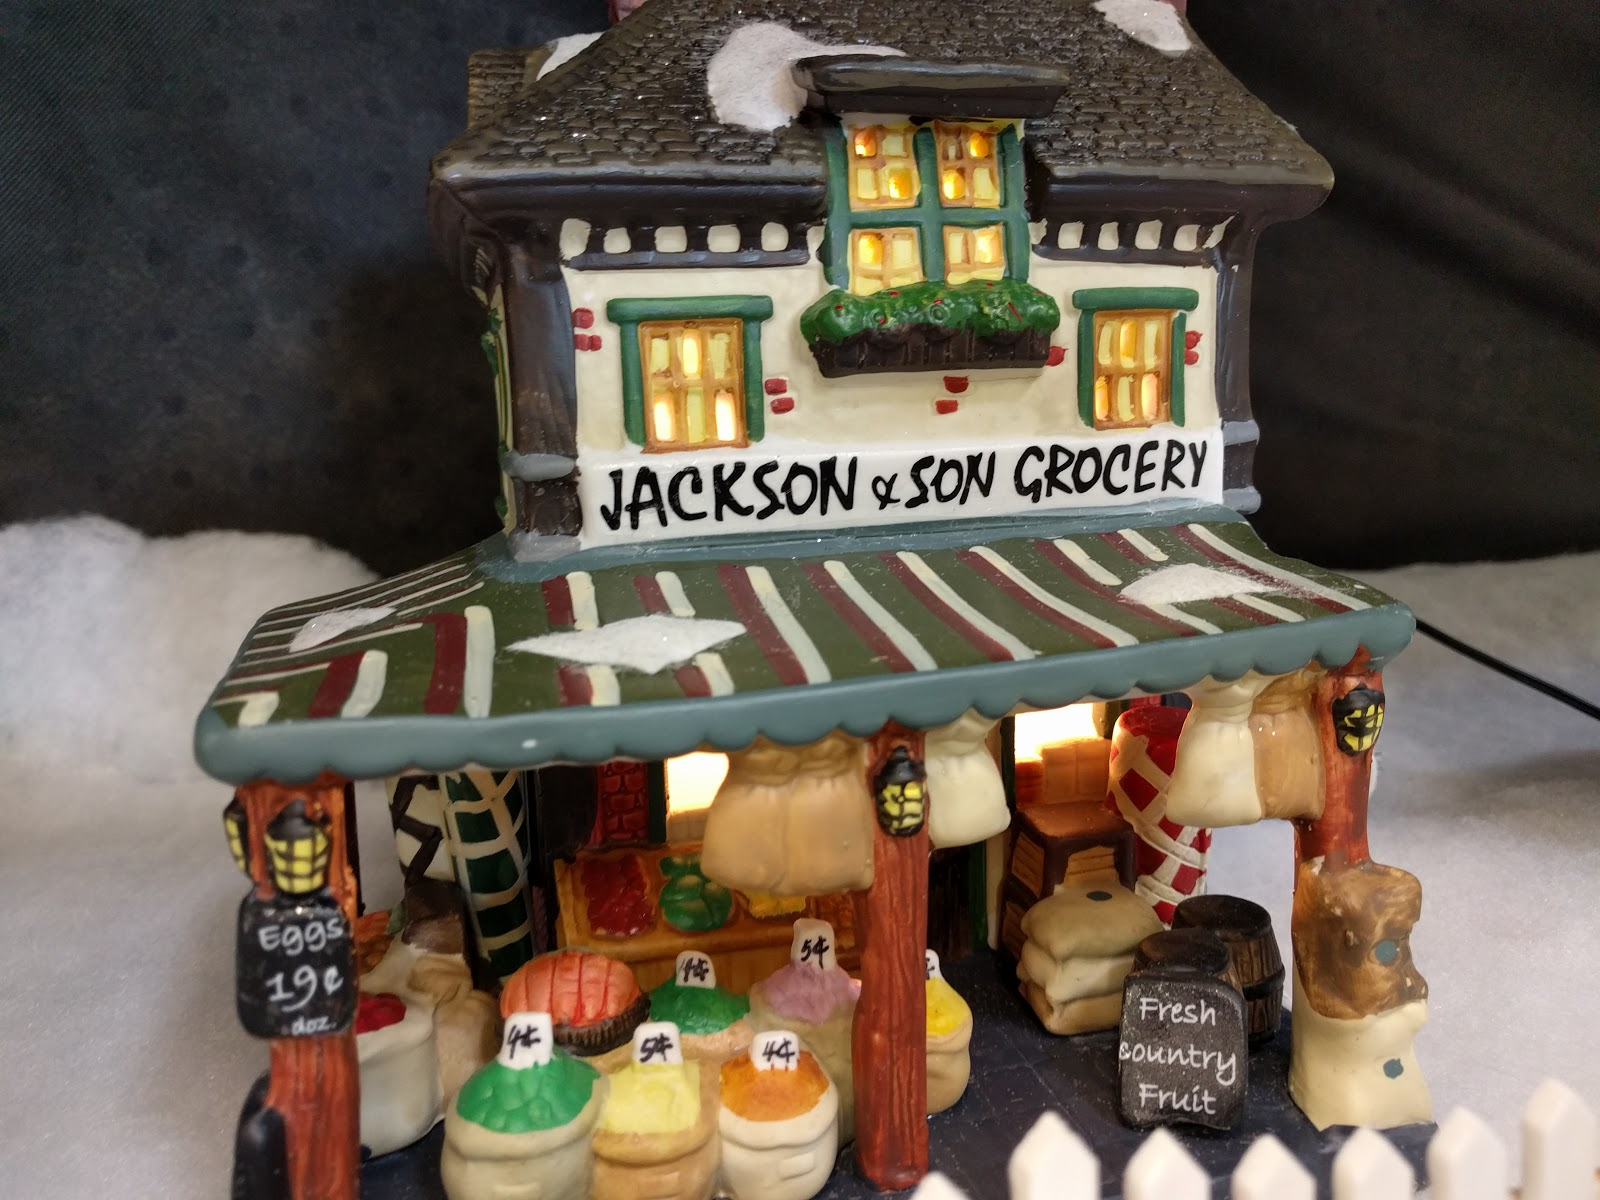 Jackson & Son Grocery - Lemax Christmas Village At Menards